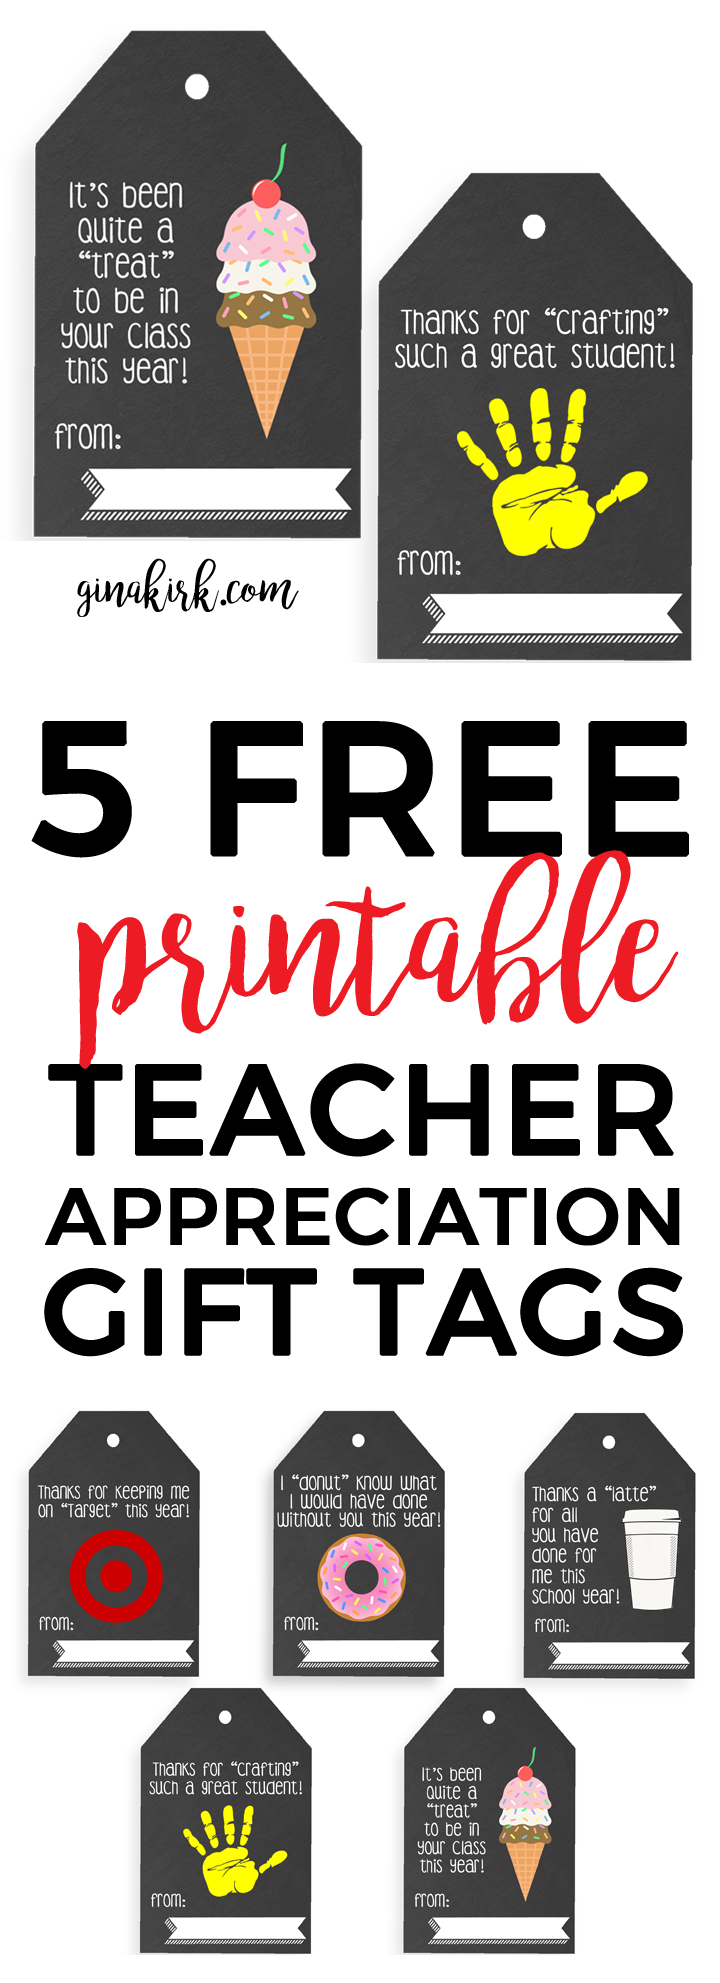 Digital download teacher appreciation tags printable tags free printable teacher gift tags teacher appreciation week ideas teacher gifts free printable gift tags ginakirk ginaekirk negle Image collections